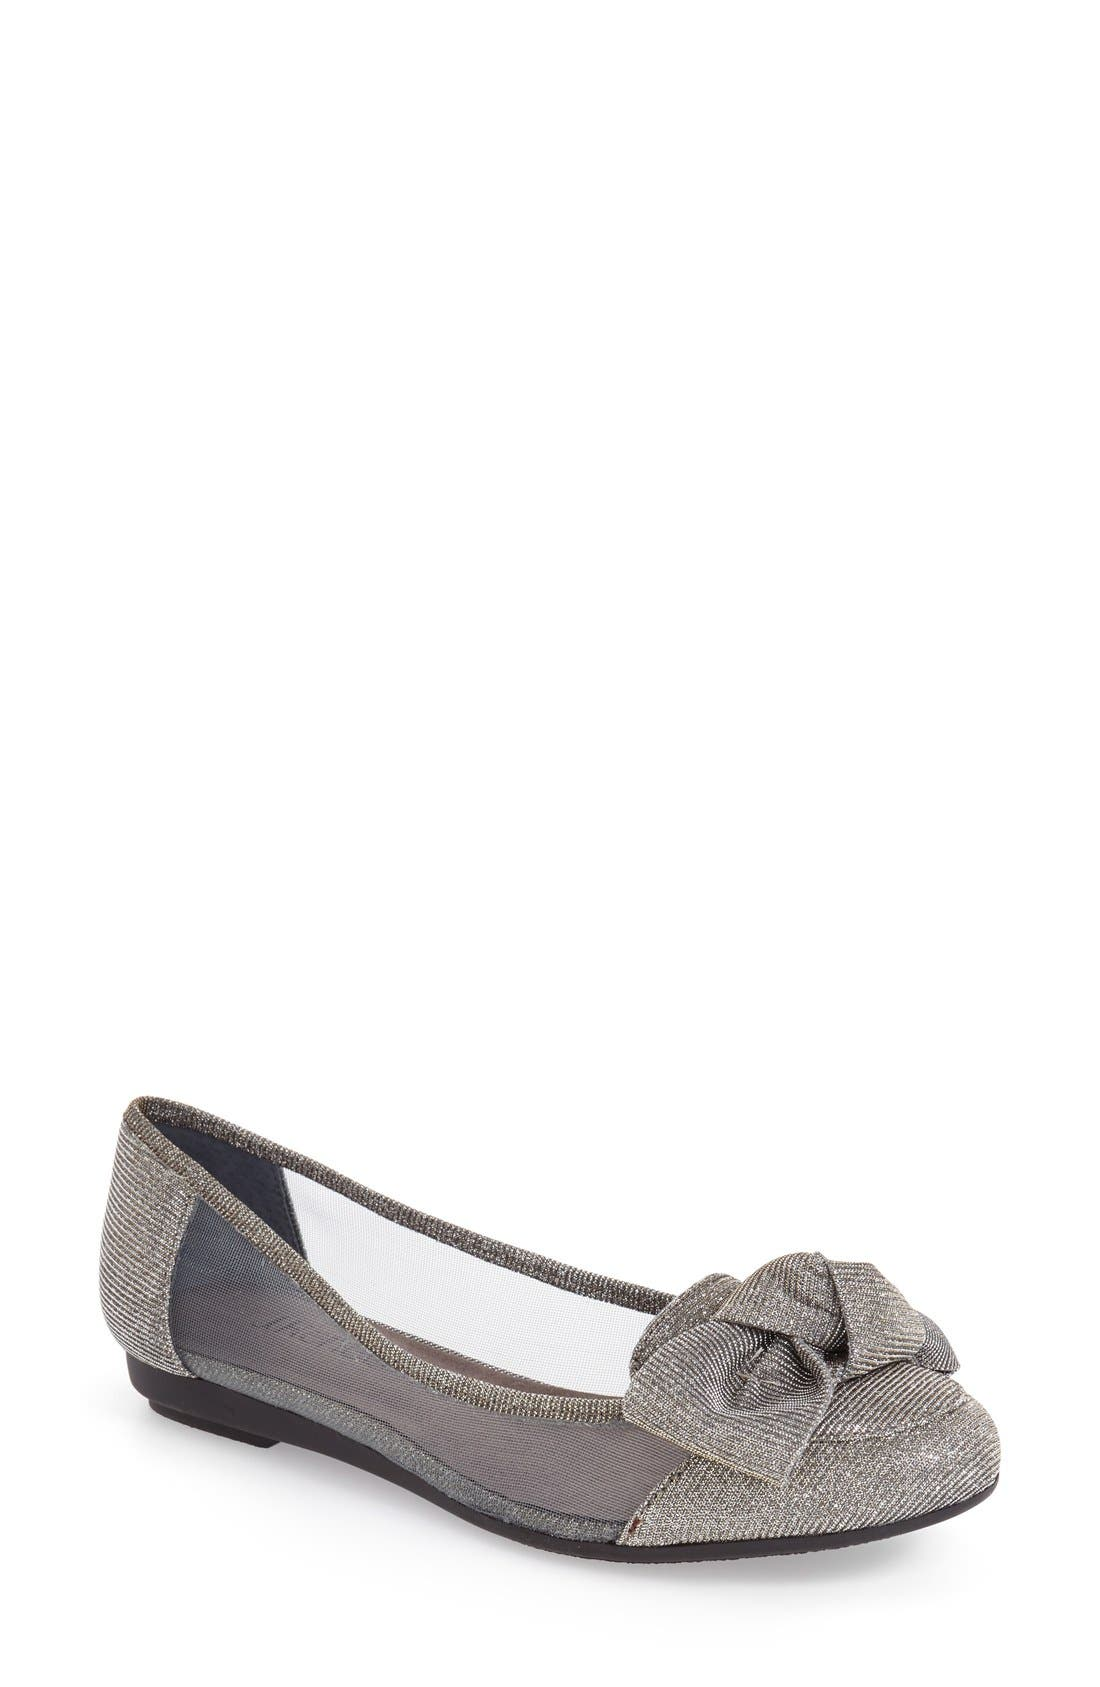 'Bacton' Mesh Inset Bow Flat,                         Main,                         color, 020